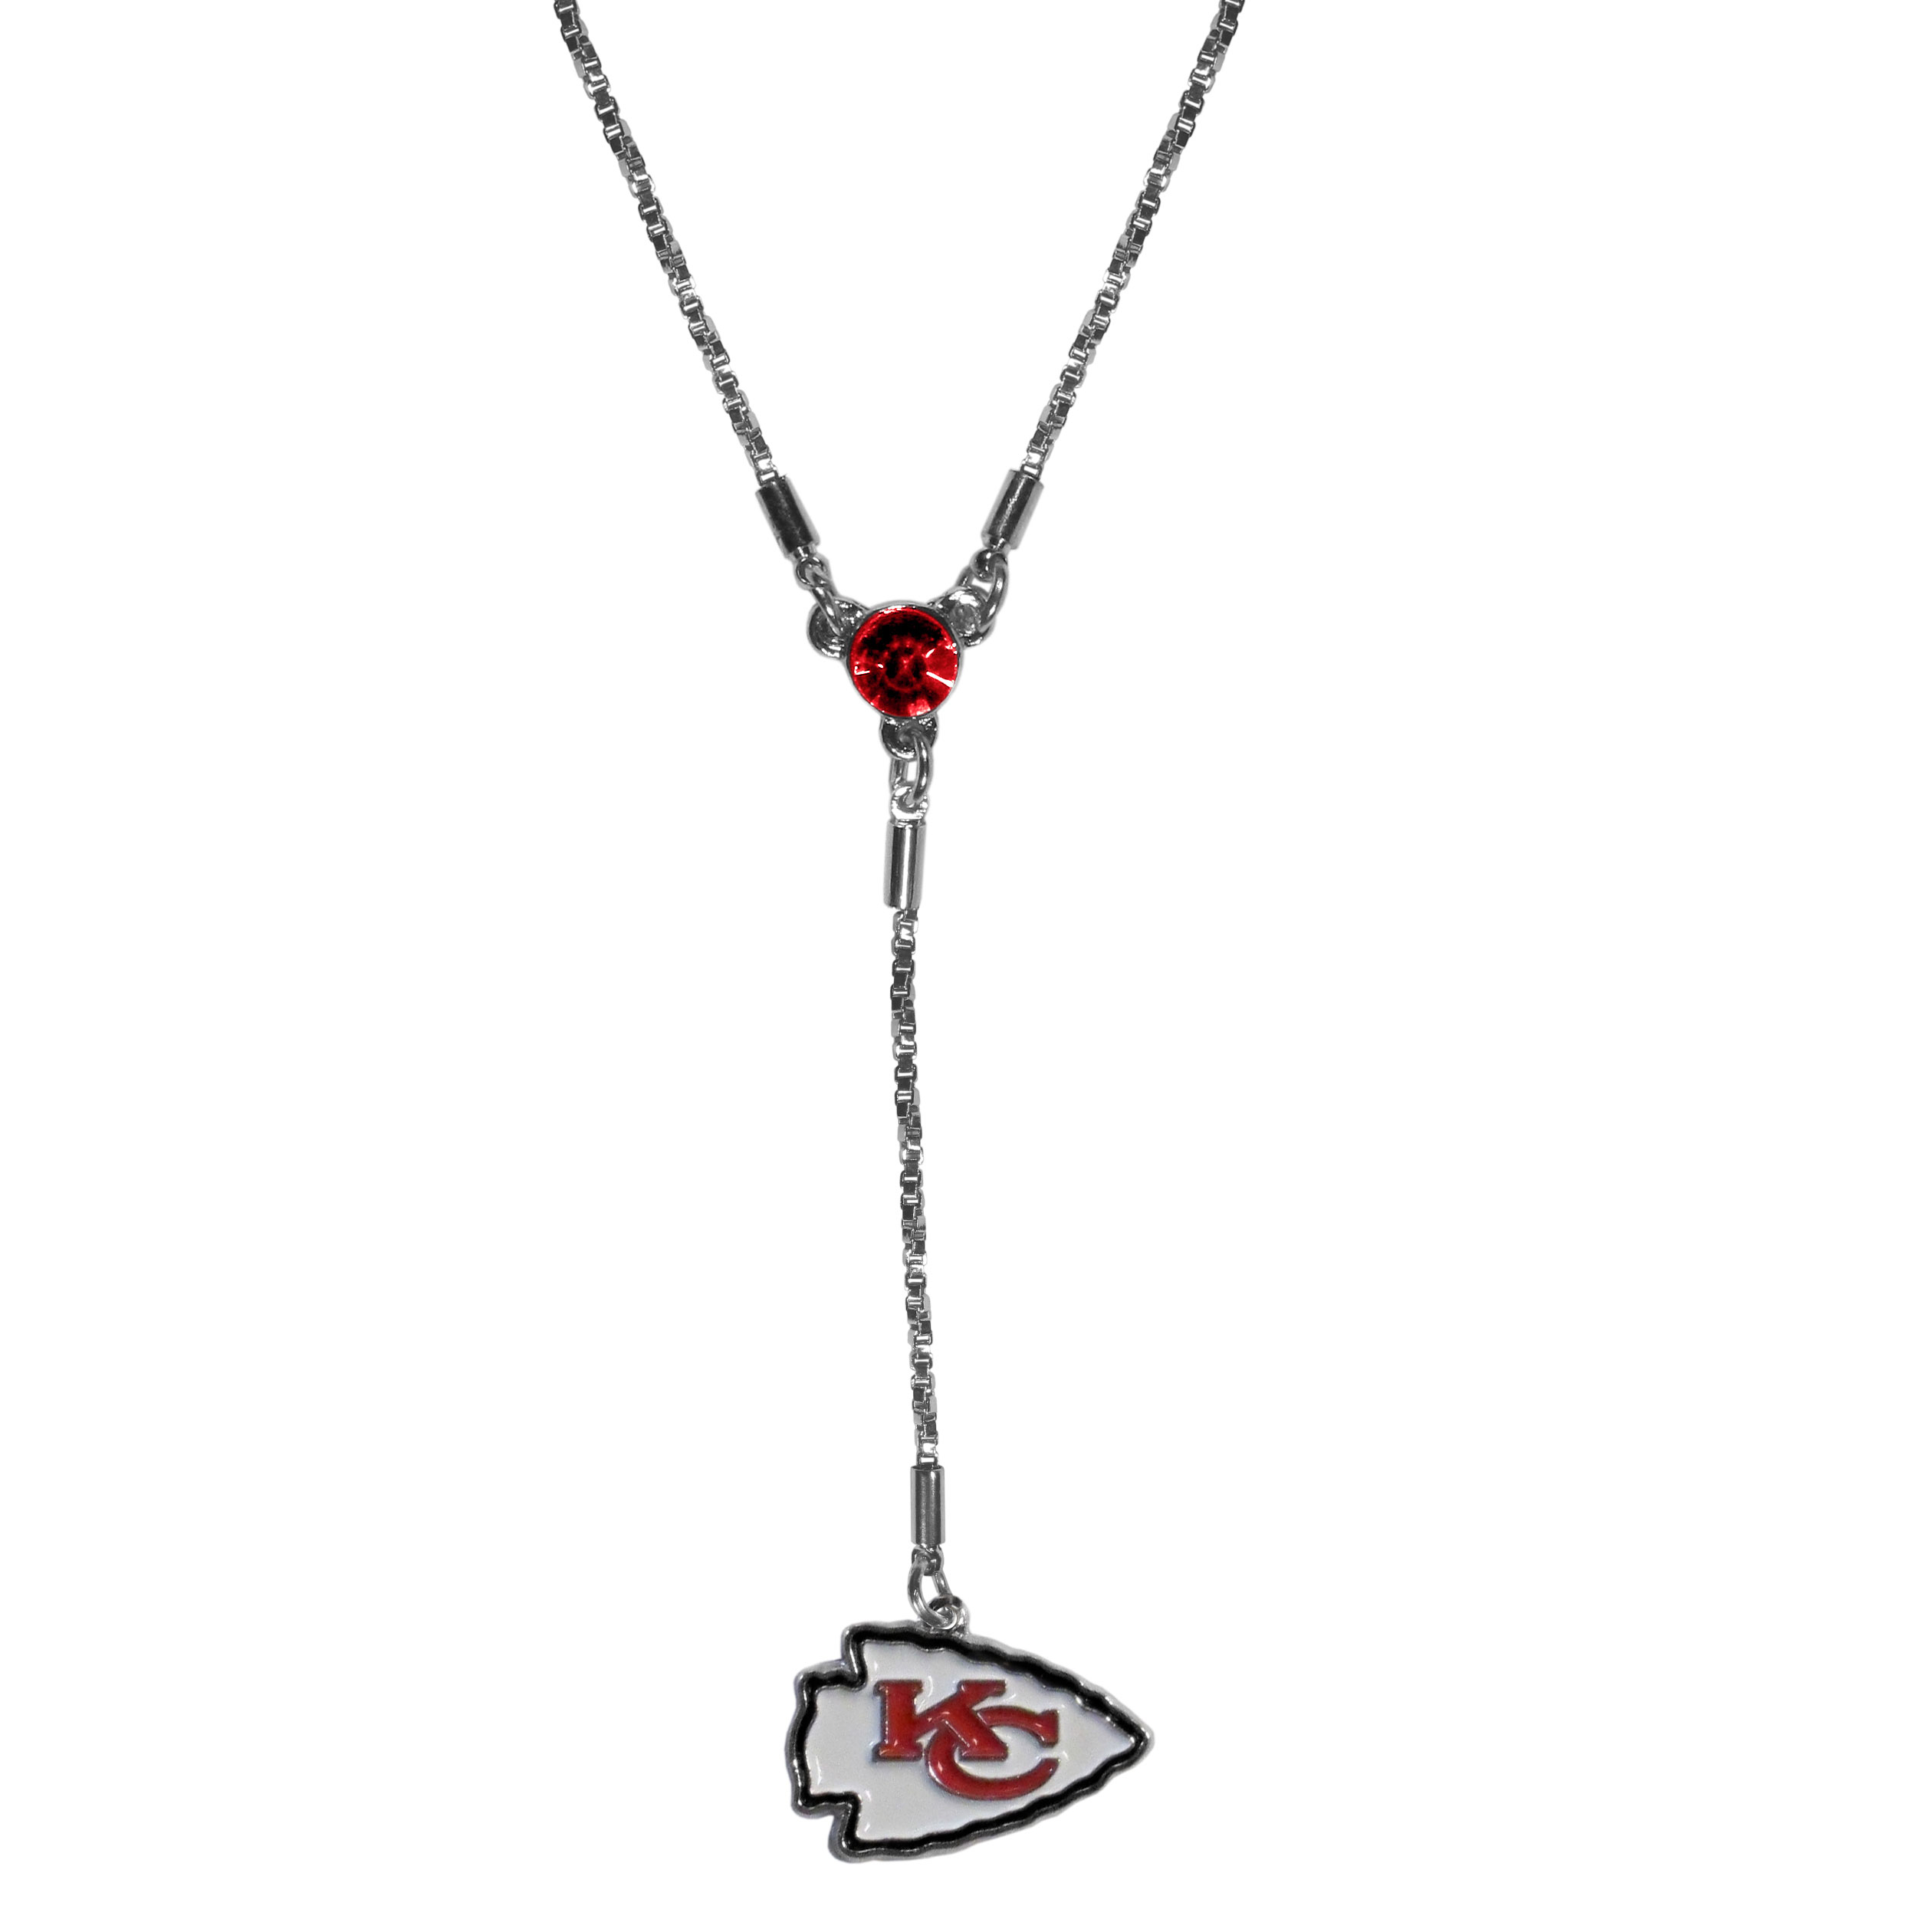 Kansas City Chiefs Lariat Necklace - This designer look is a stylish version of the classic lariat necklace. The chic box chain is 16 inches long with a 2 inch extender, the Y drop features a large team colored crystal with an expertly carved team charm. This trendy look is a perfect blend of sporty and chic making is a mush-have fashion accessory for the fashion-forward Kansas City Chiefs fan.